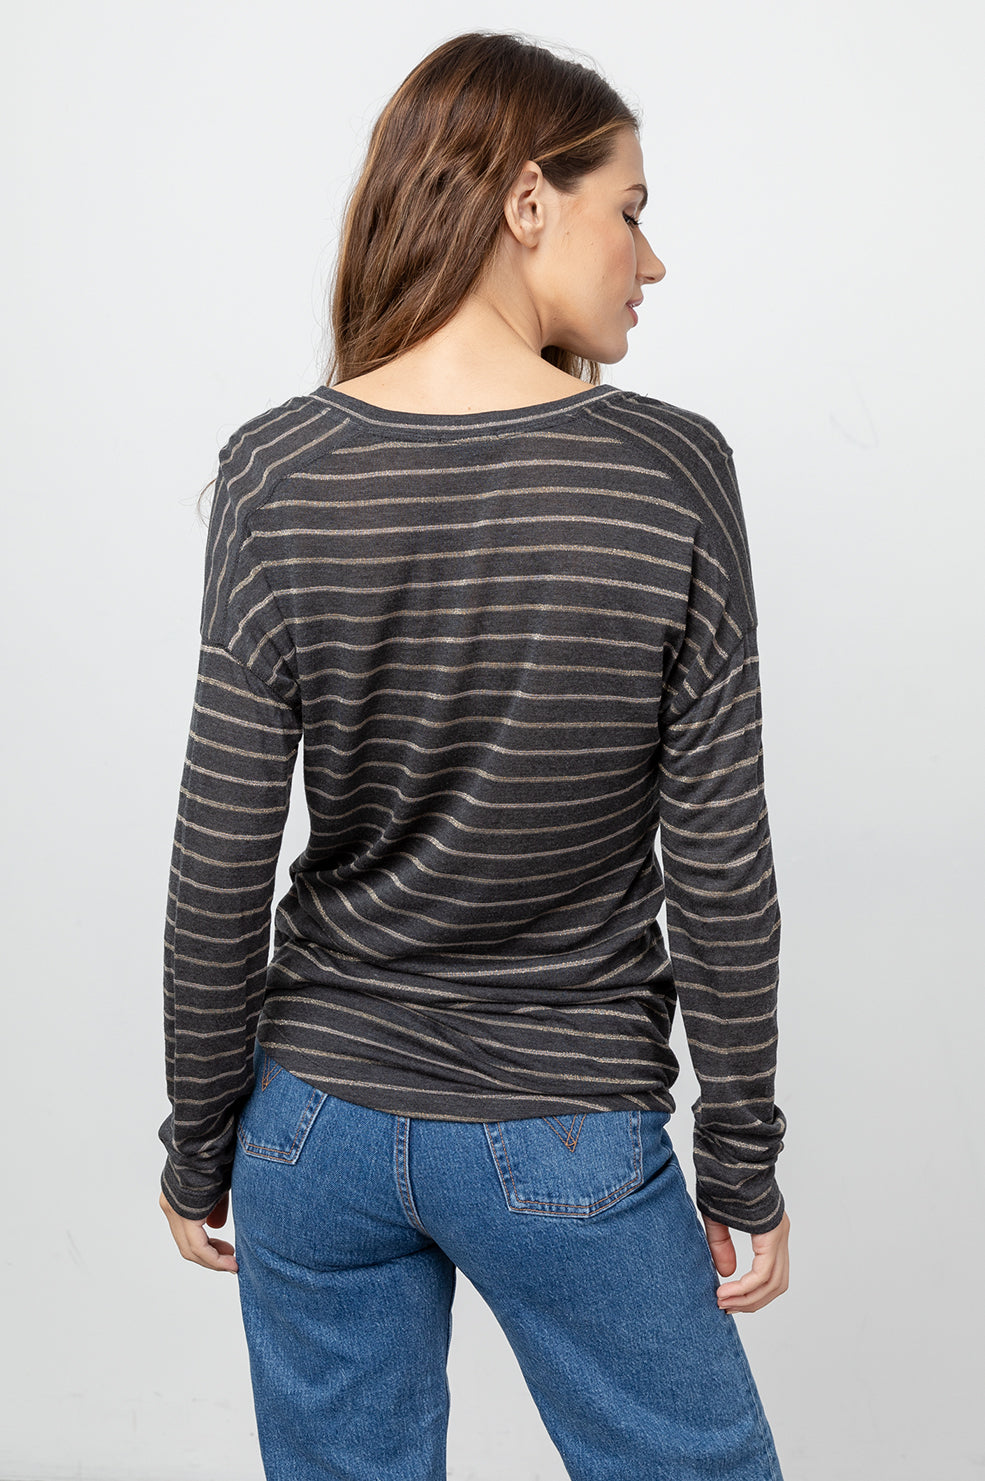 SAMI - CHARCOAL BRONZE STRIPE